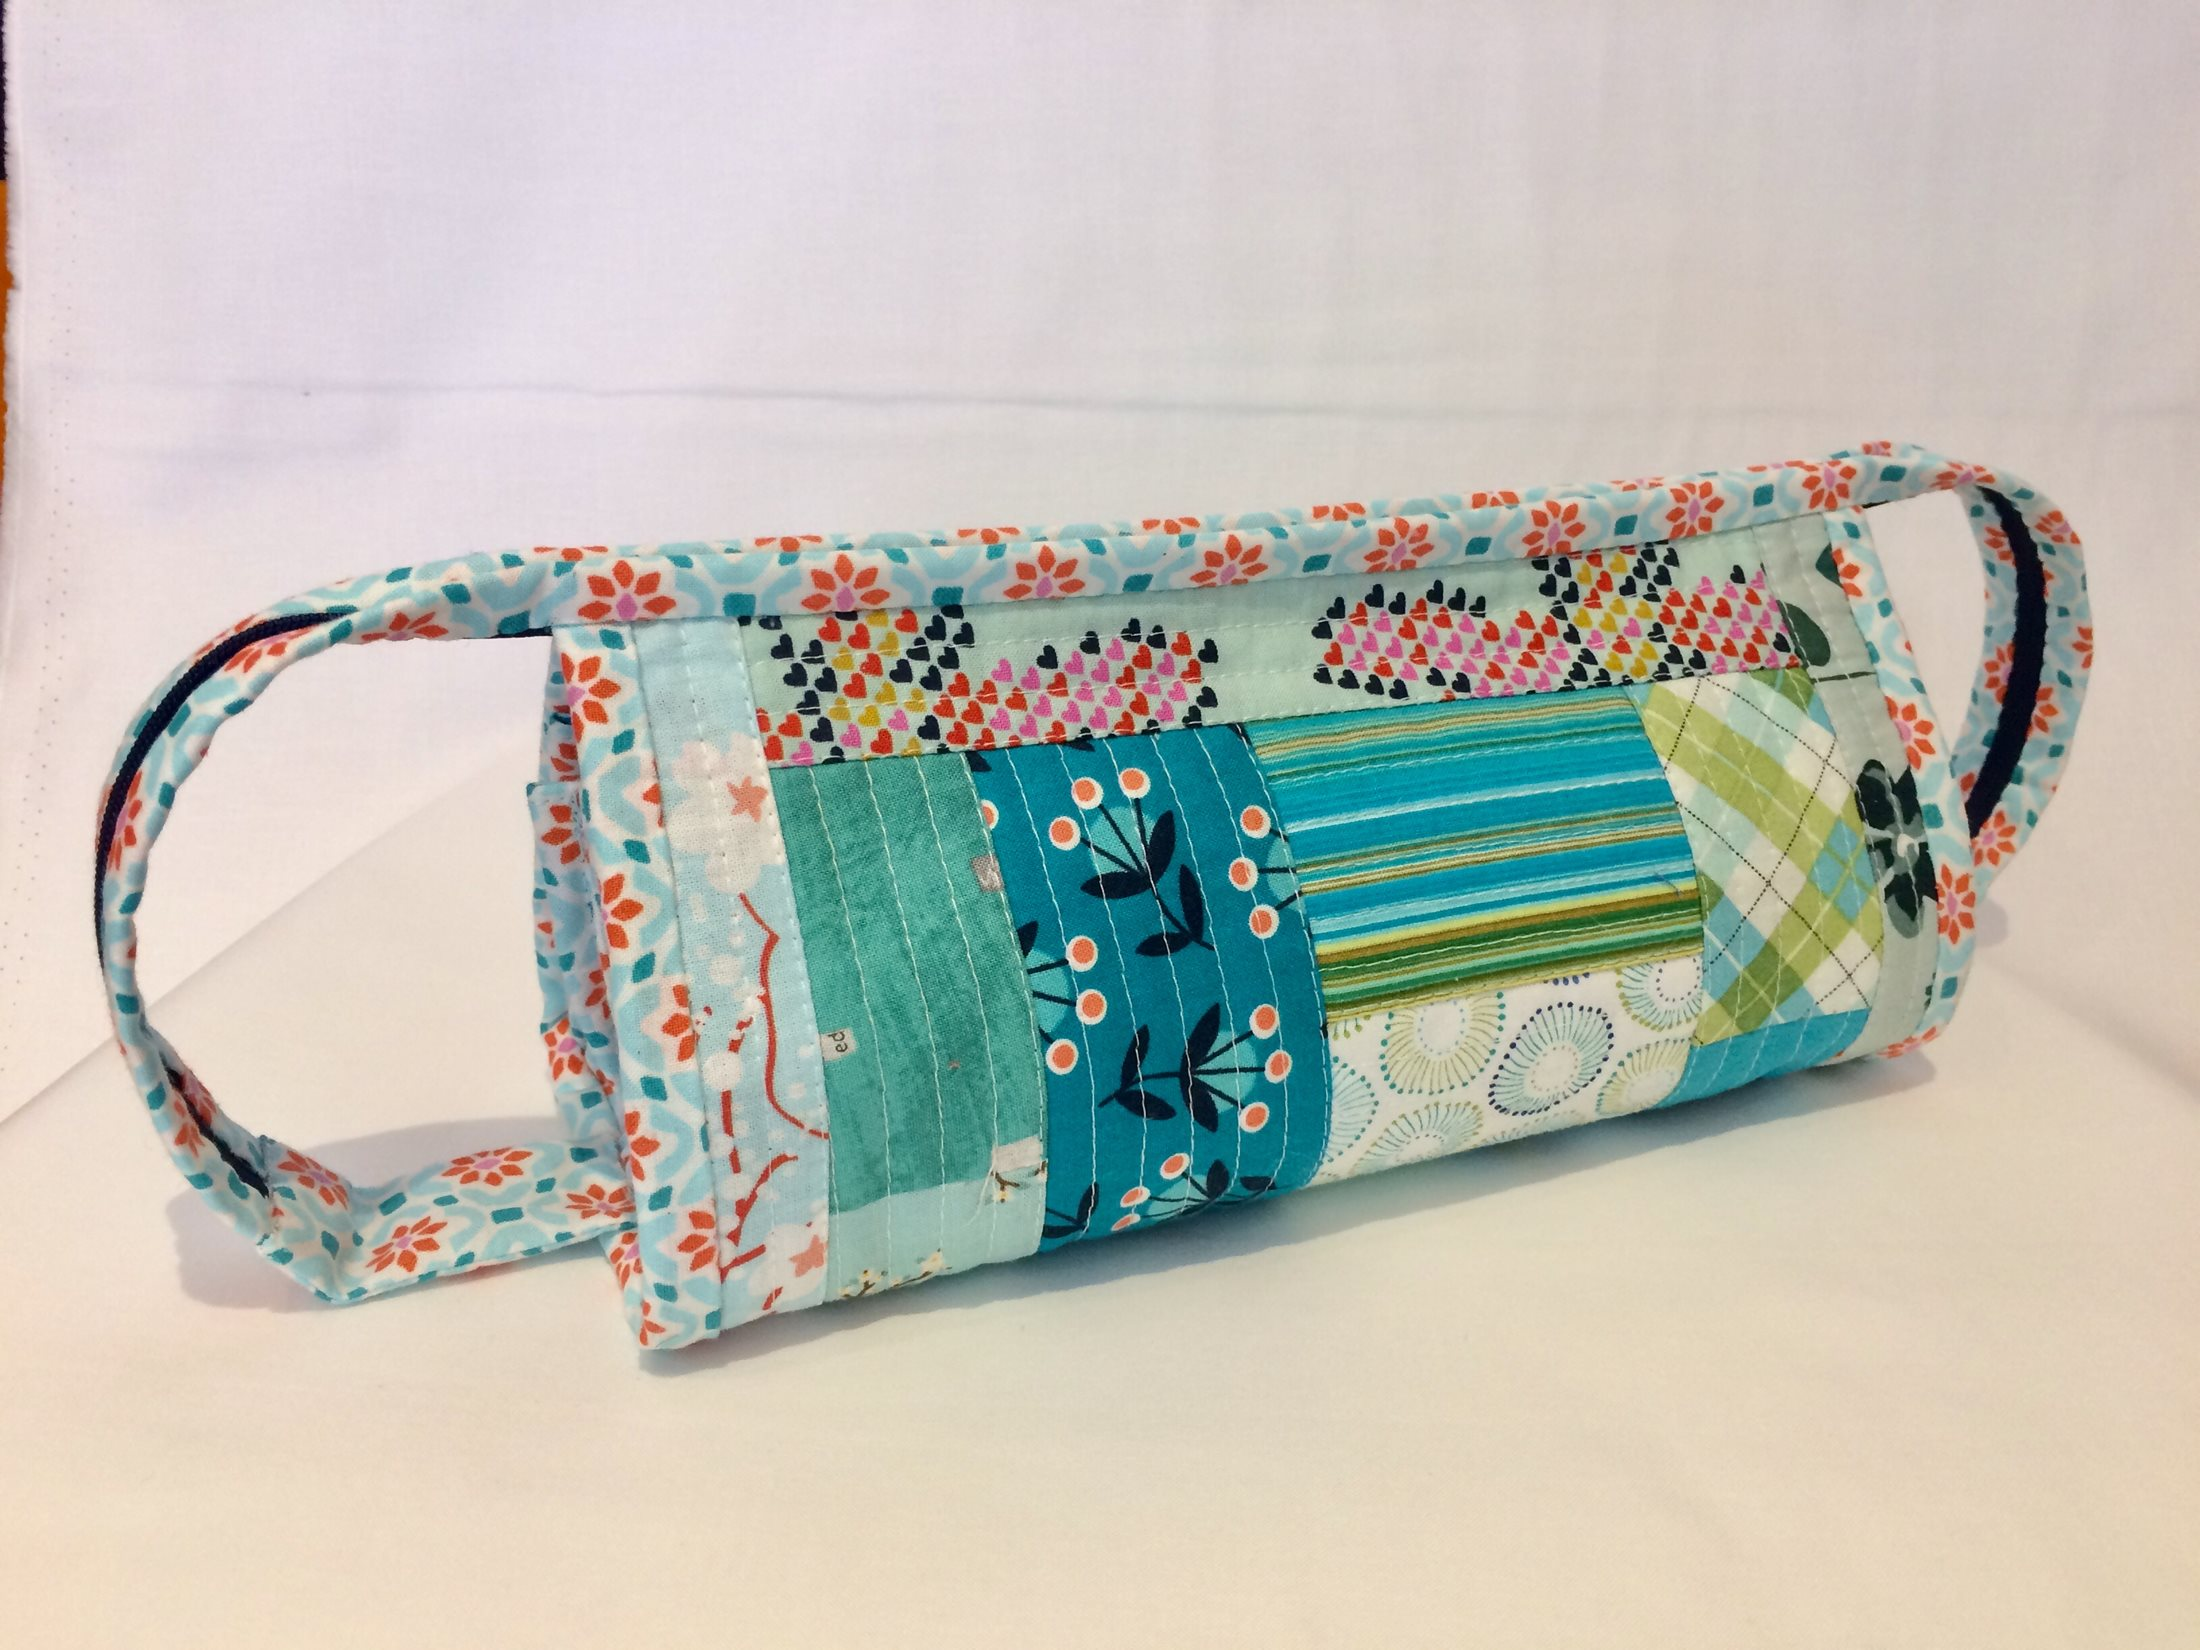 Bild: Patchworkkurs – Sew Together Bag  3/3